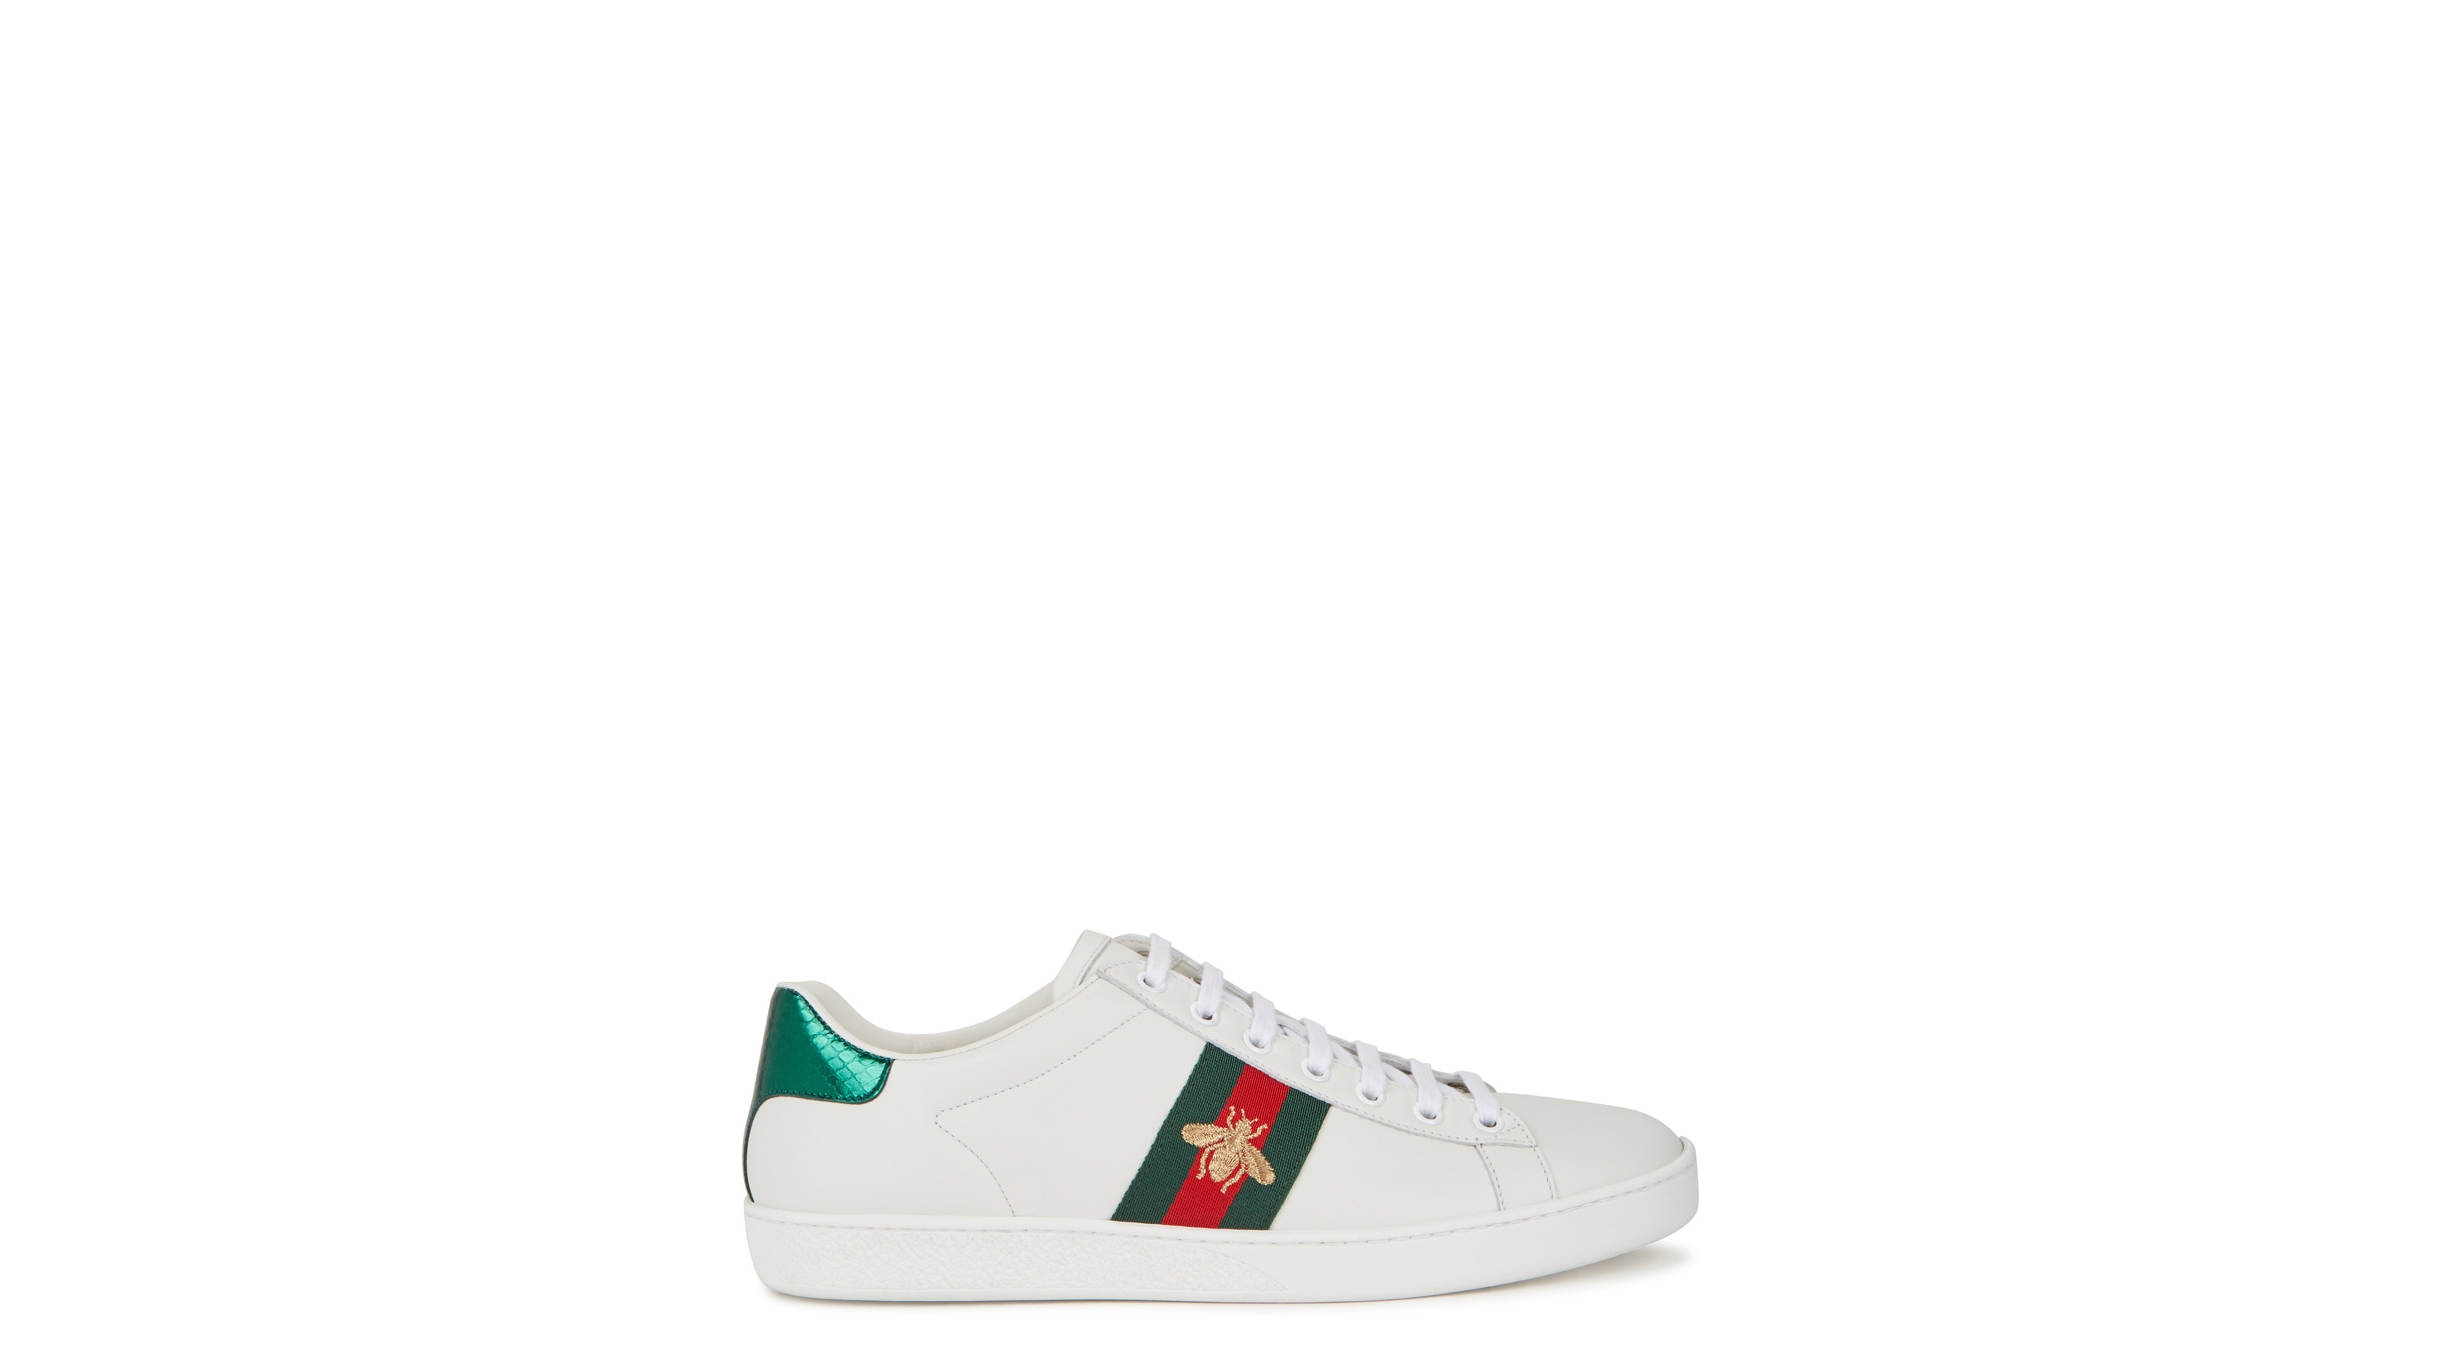 bd5fbcade1 Ace embroidered white leather sneakers